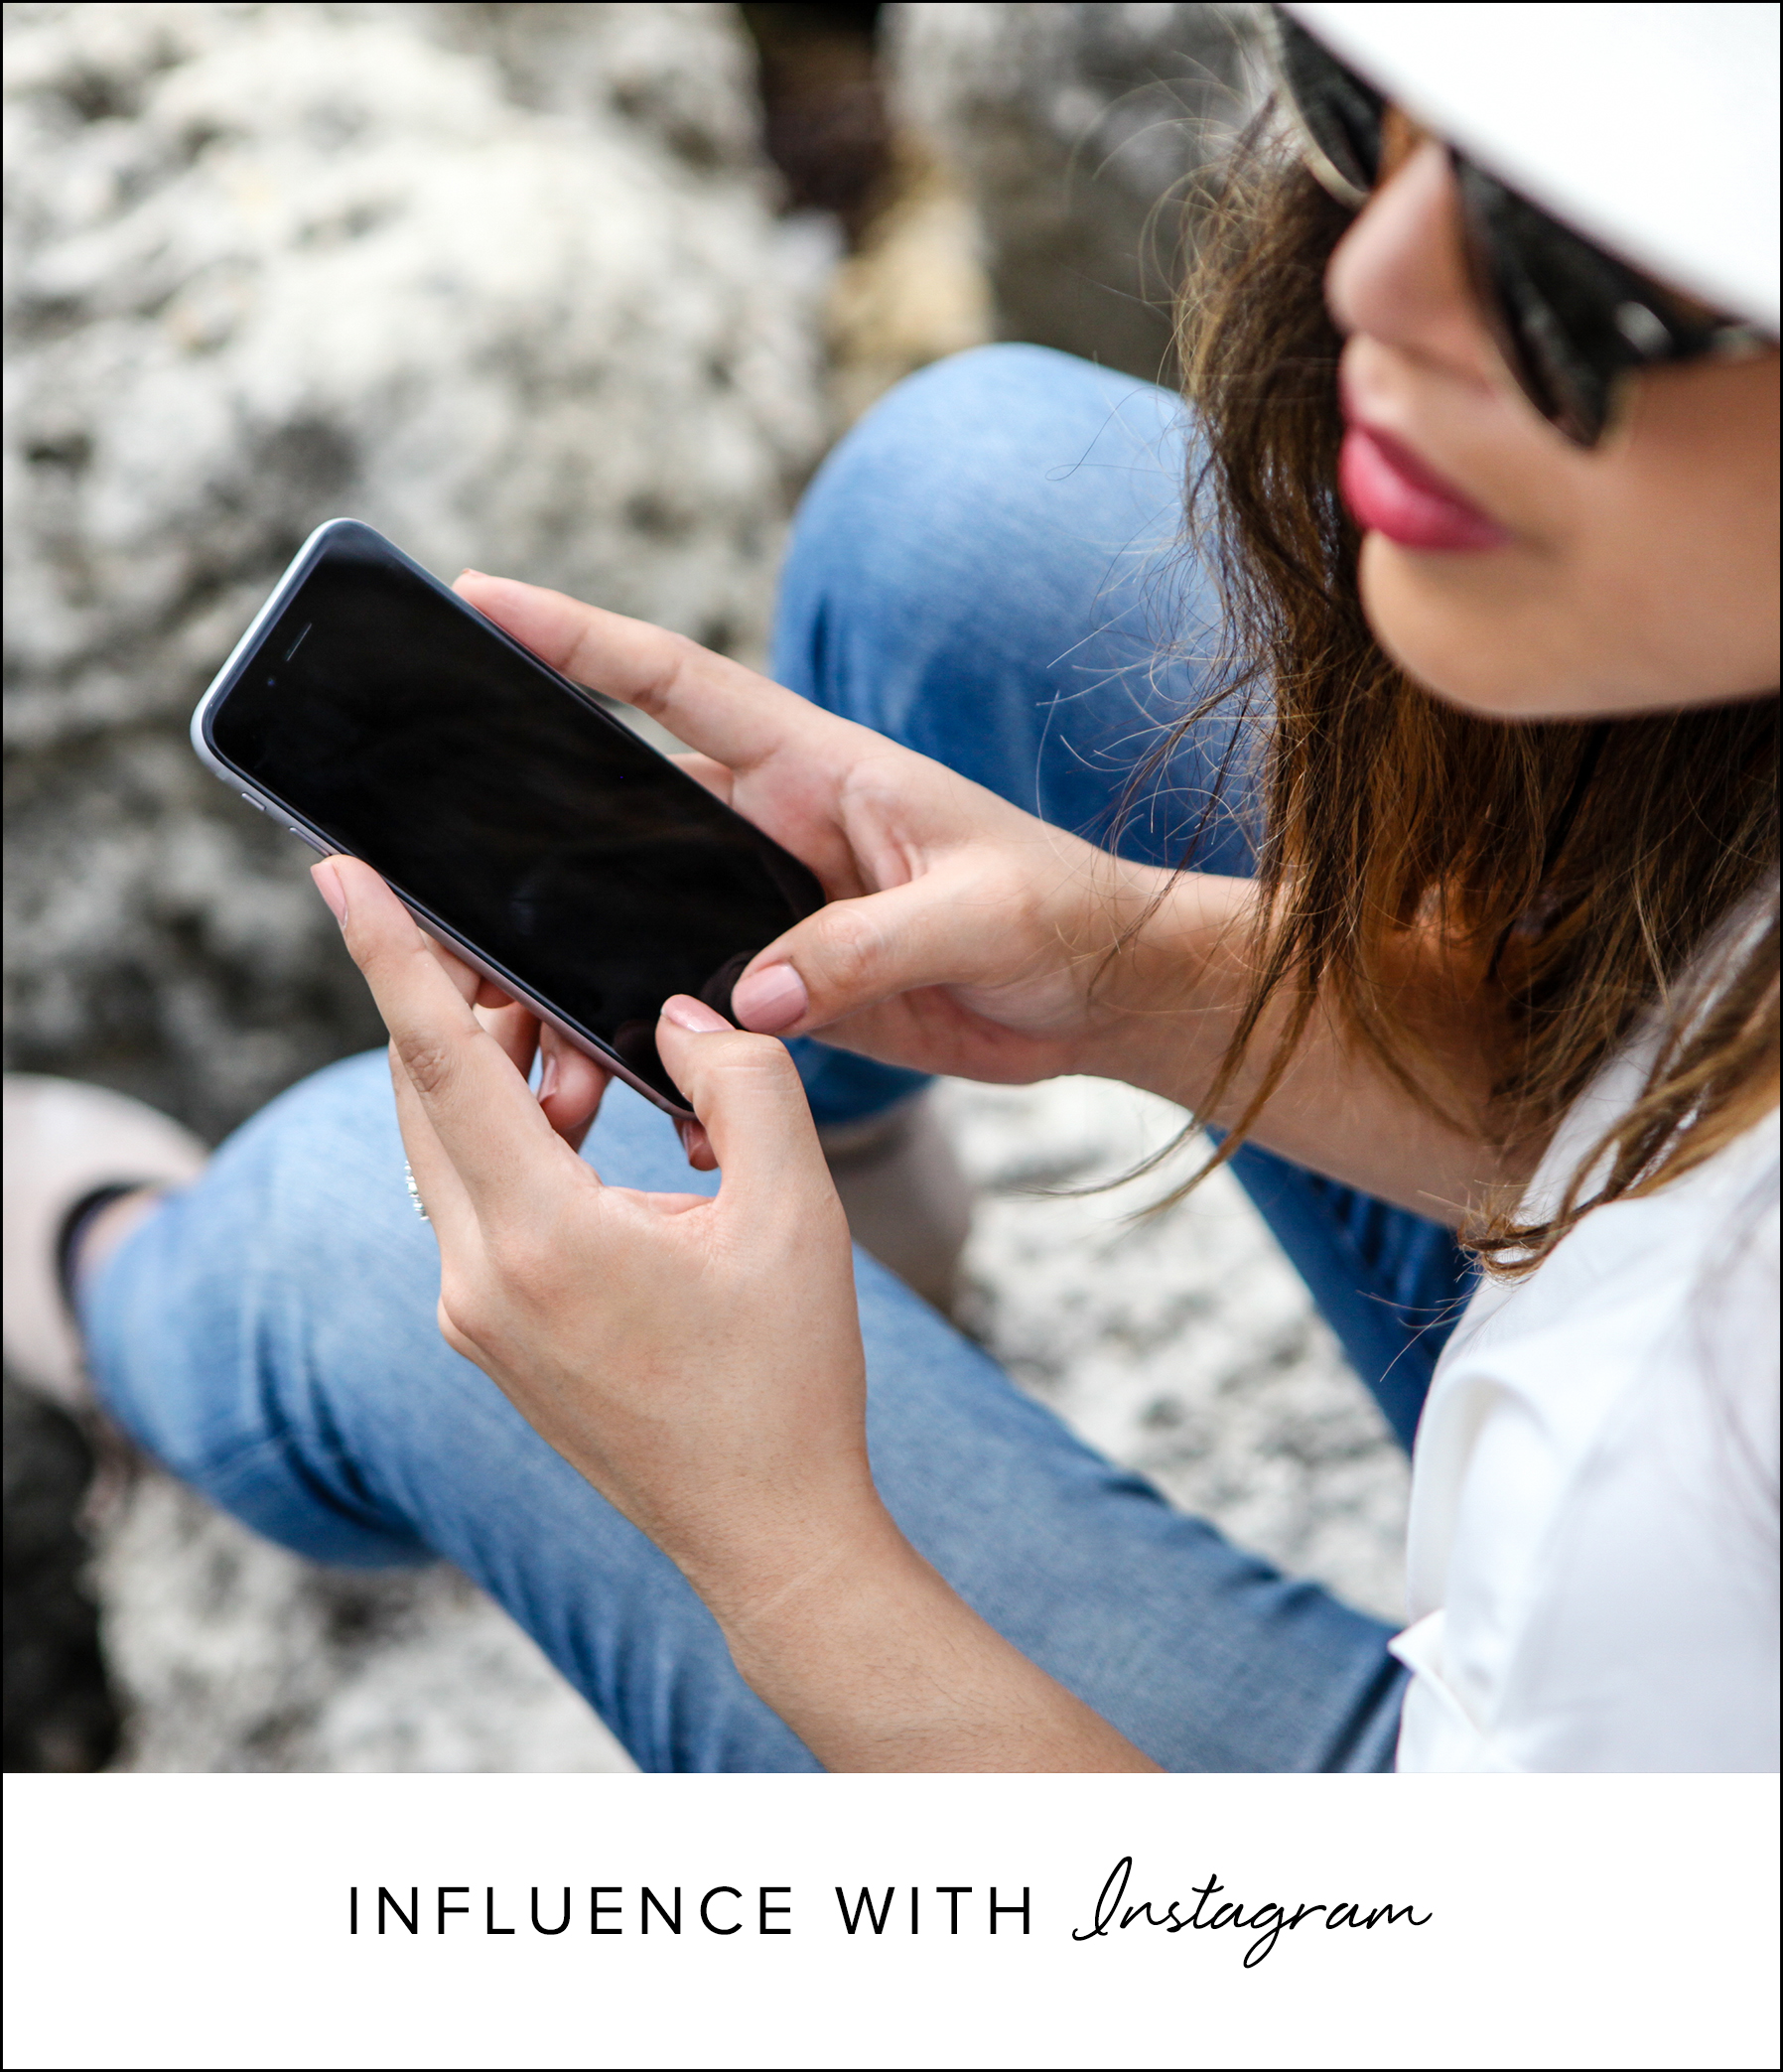 Influence With Instagram.jpg